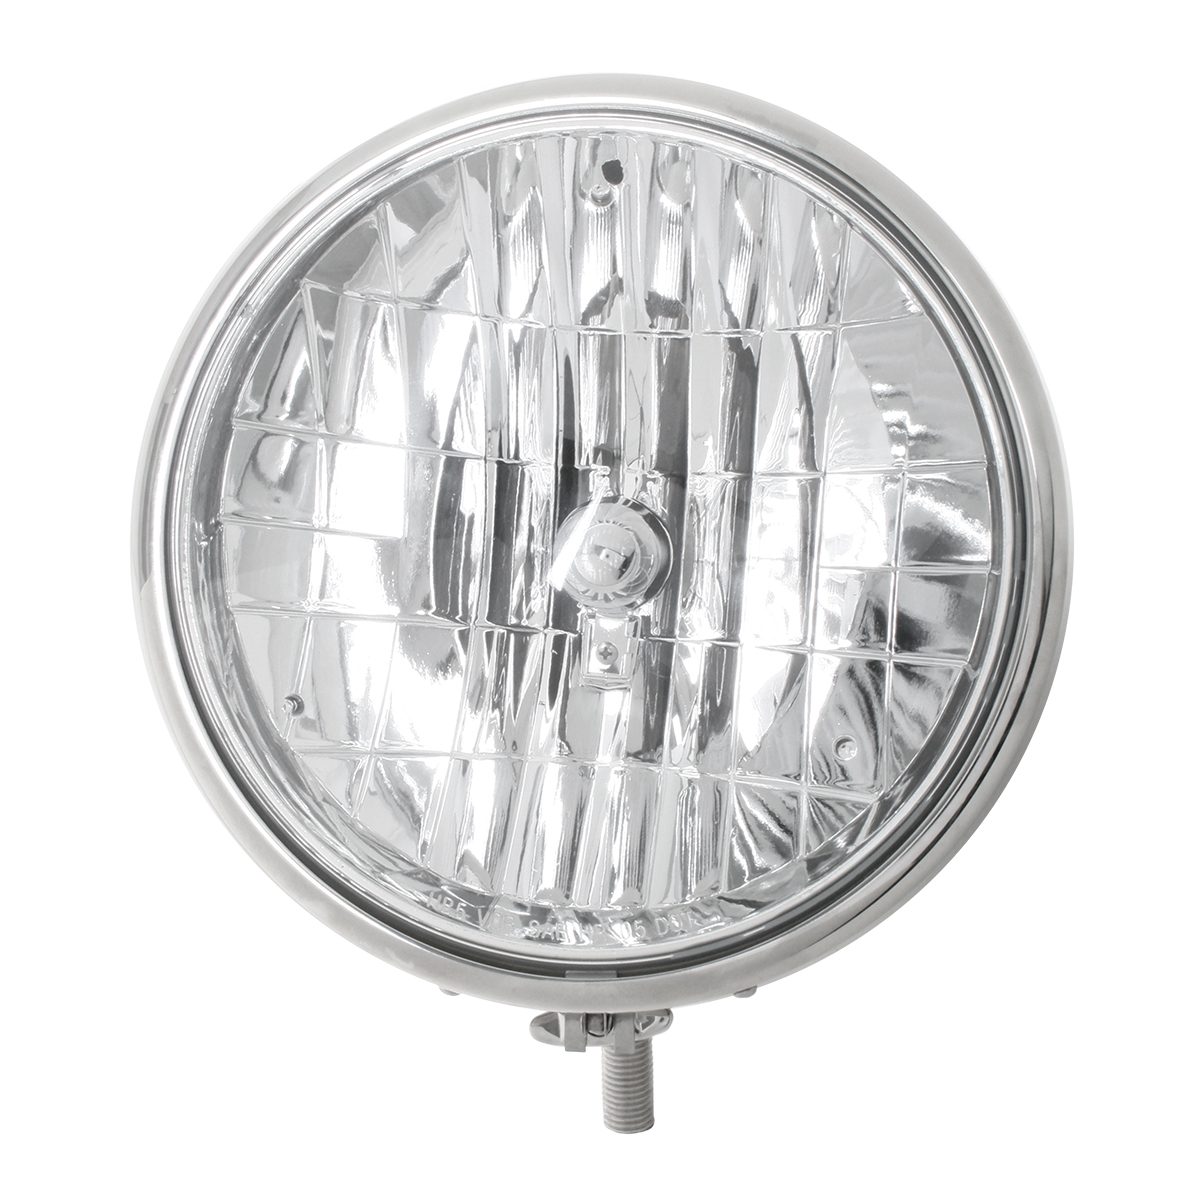 "#87730 Stainless Steel 9 ½"" Headlight"